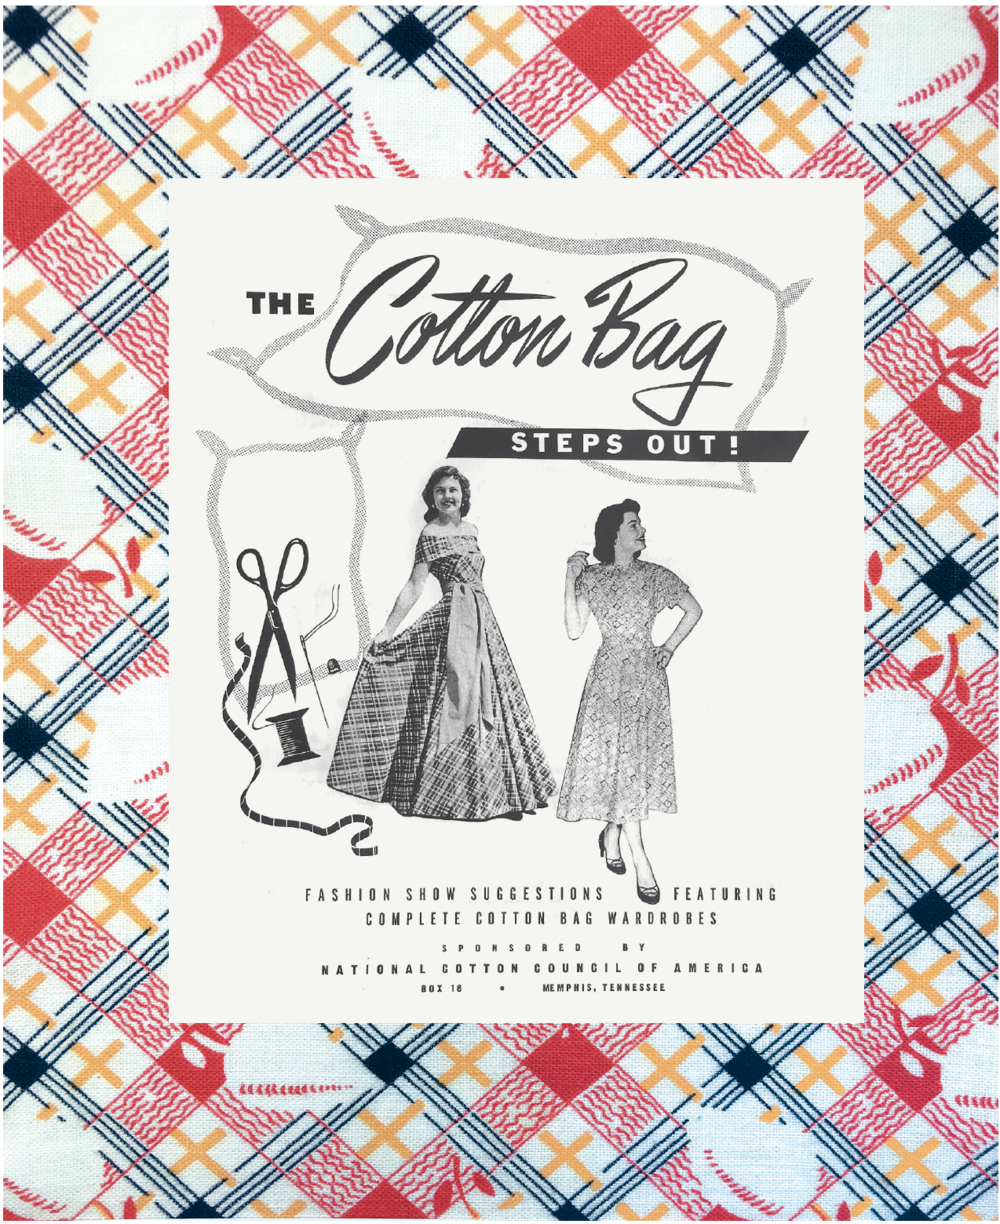 Cotton Bag Steps Out Feed Sack book page 241 Linzee McCray. .png